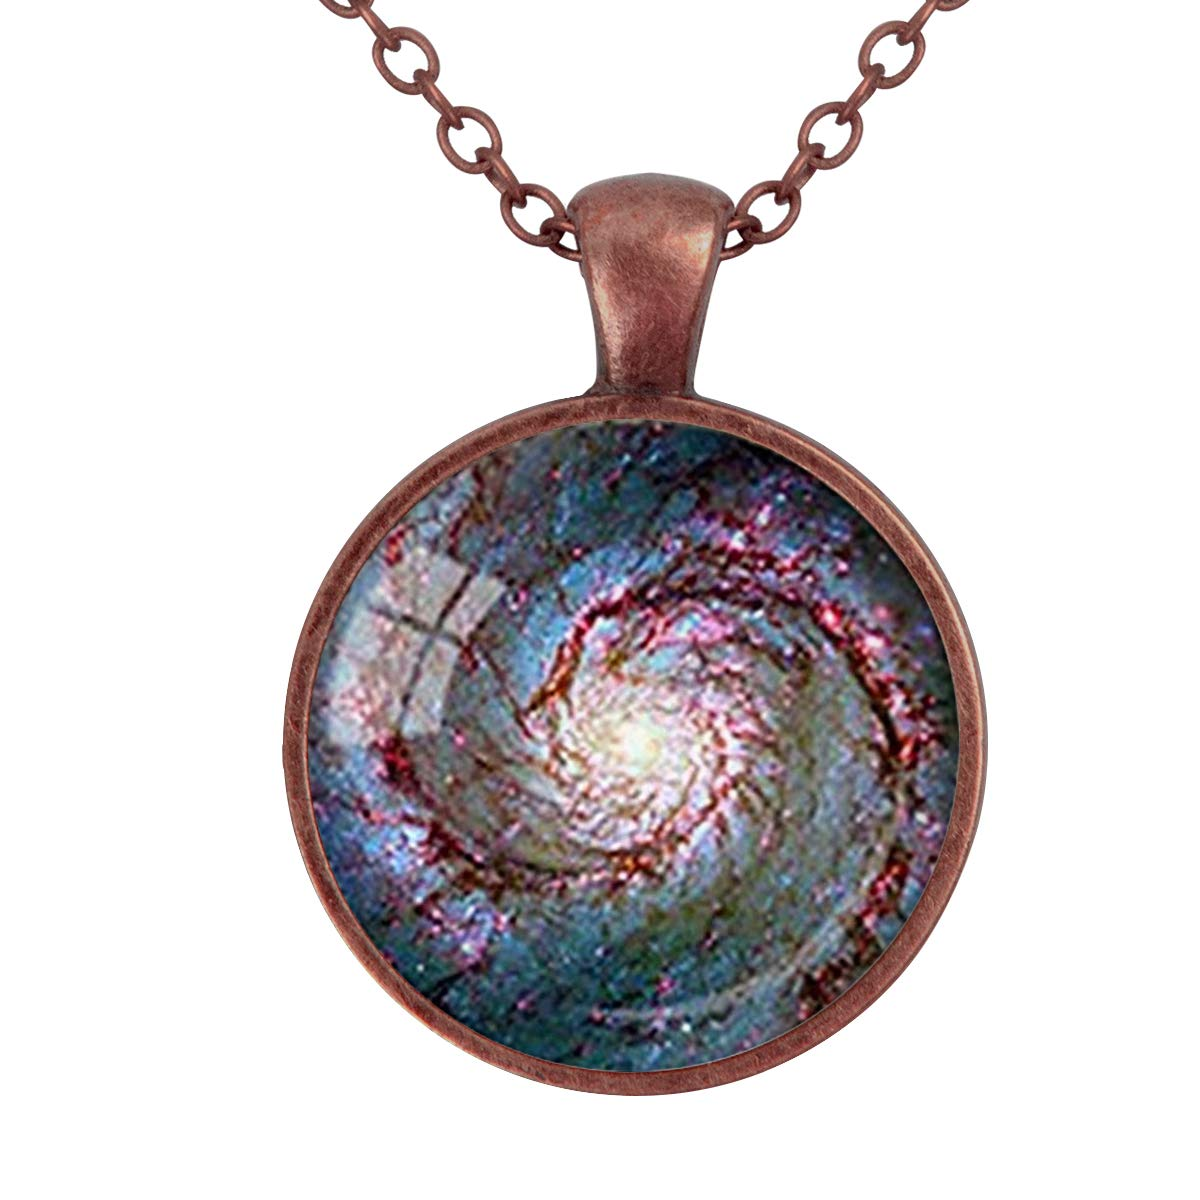 Lightrain Whirlpool Galaxy Space Astronomy Pendant Necklace Vintage Bronze Chain Statement Necklace Handmade Jewelry Gifts